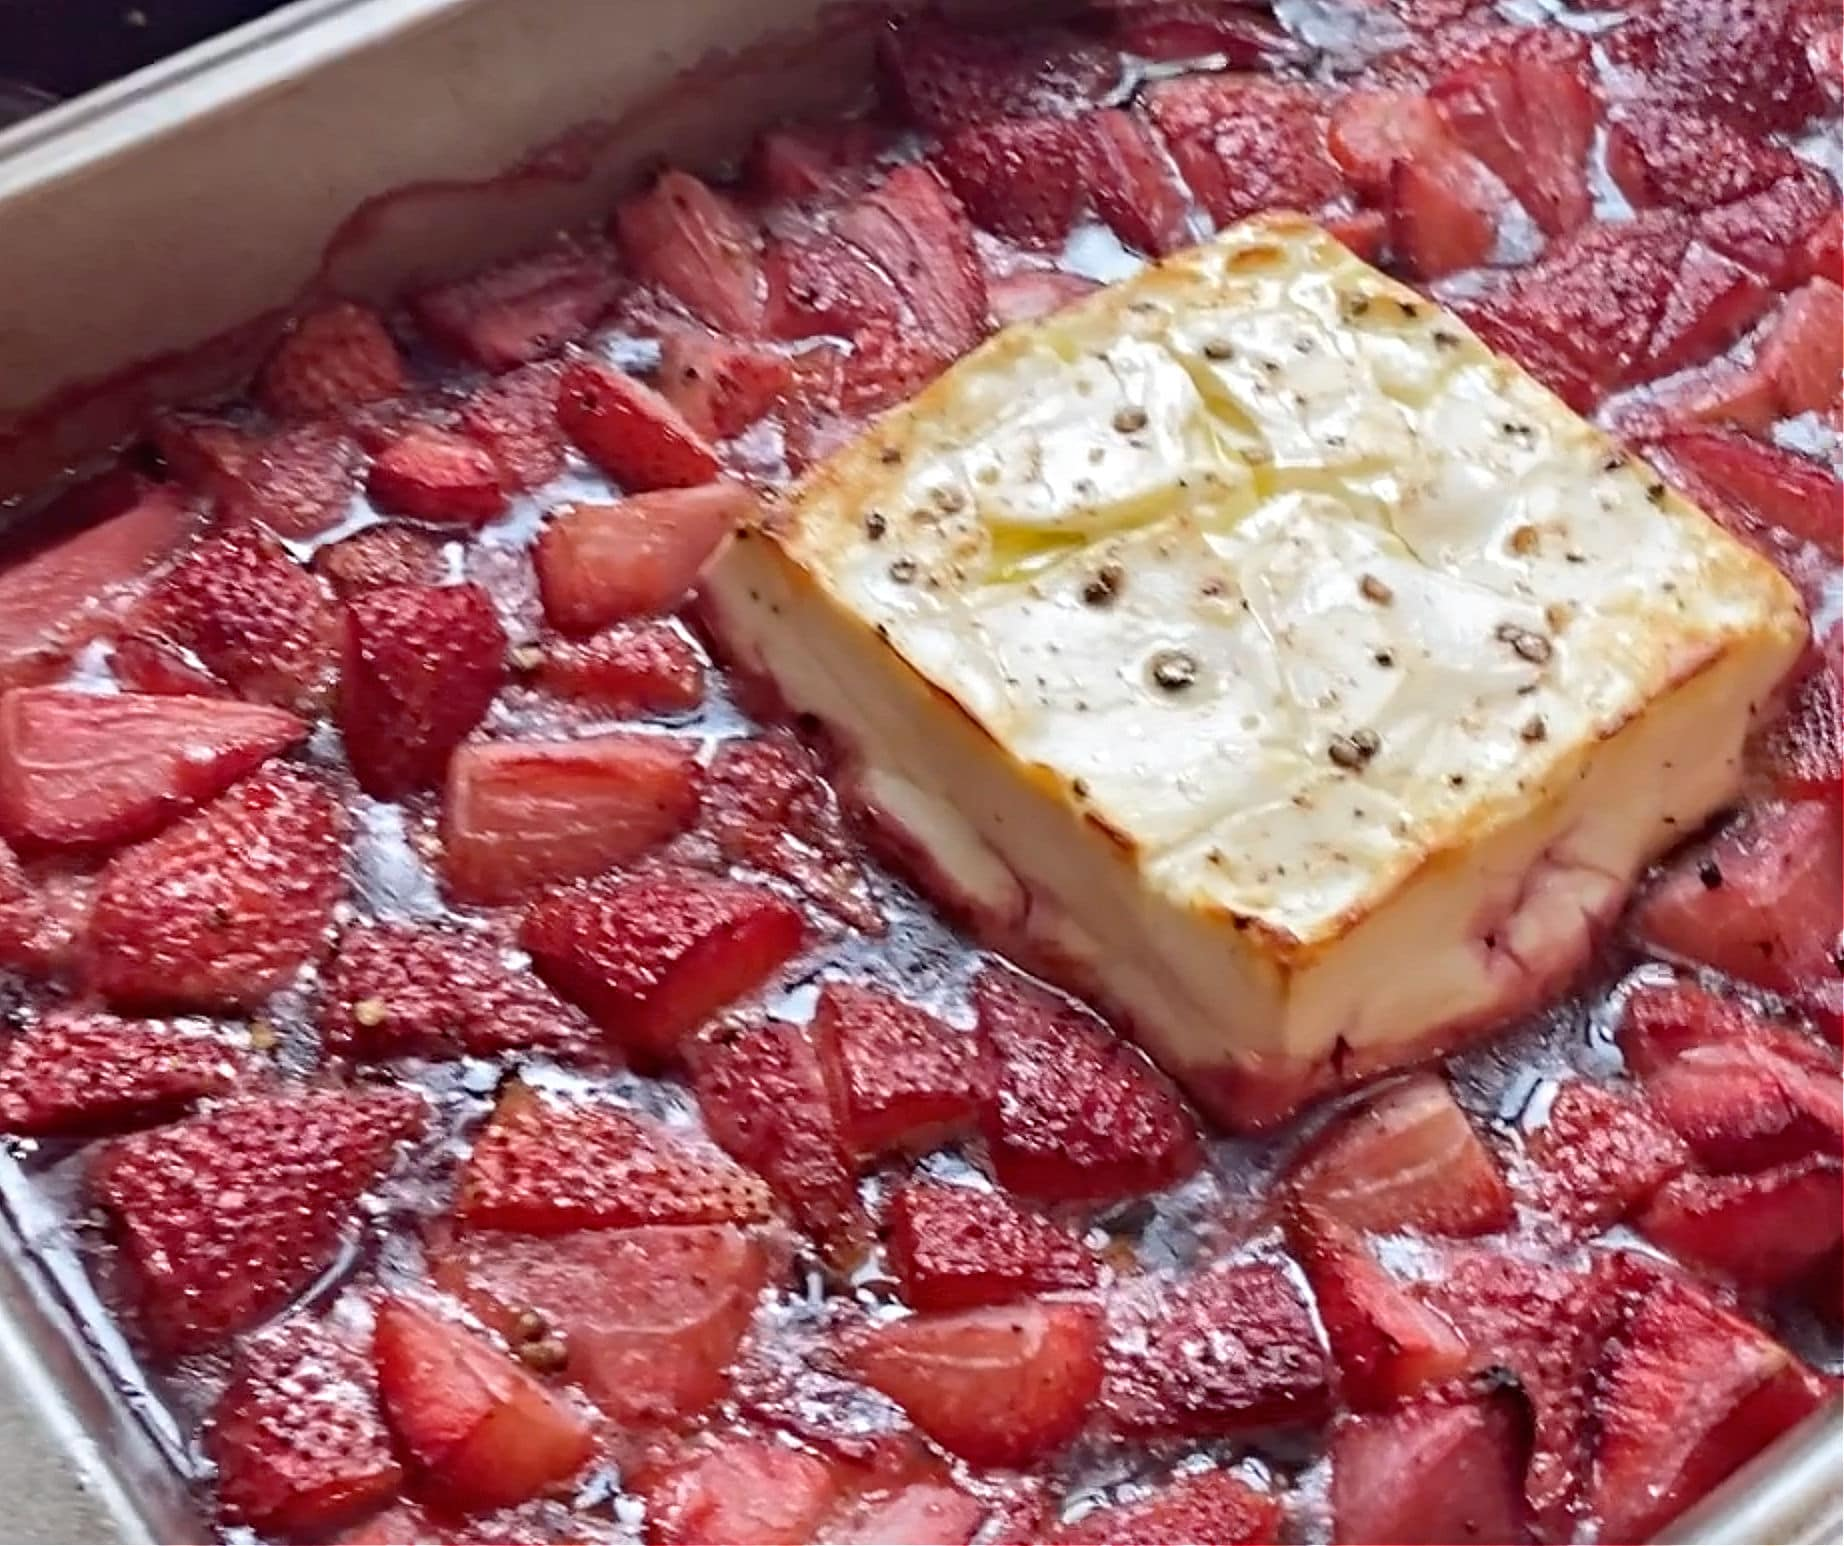 Strawberry Basil Feta Bake